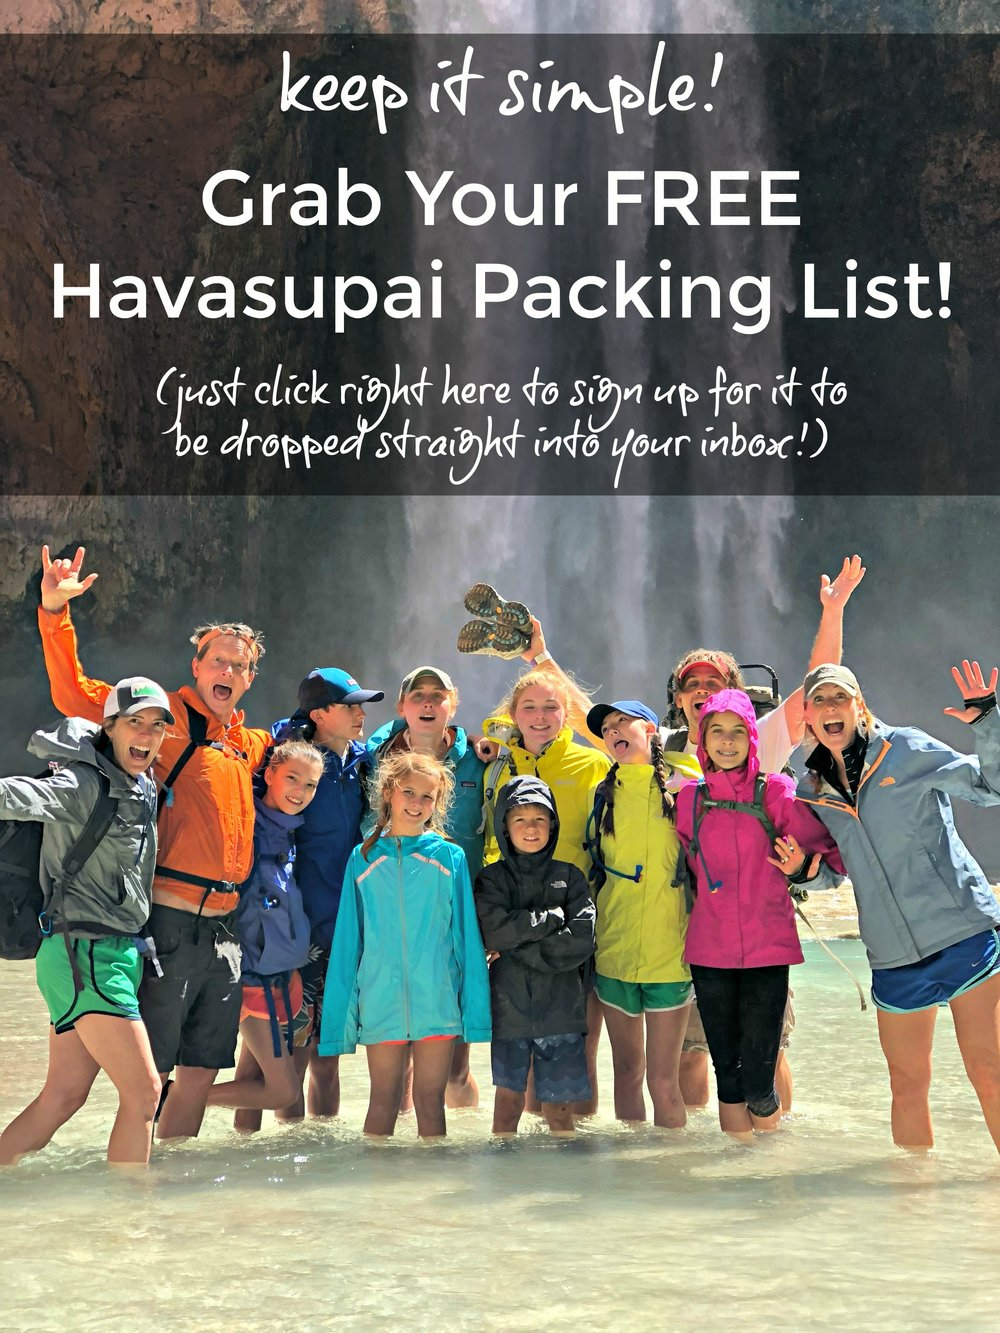 Free packing camping list